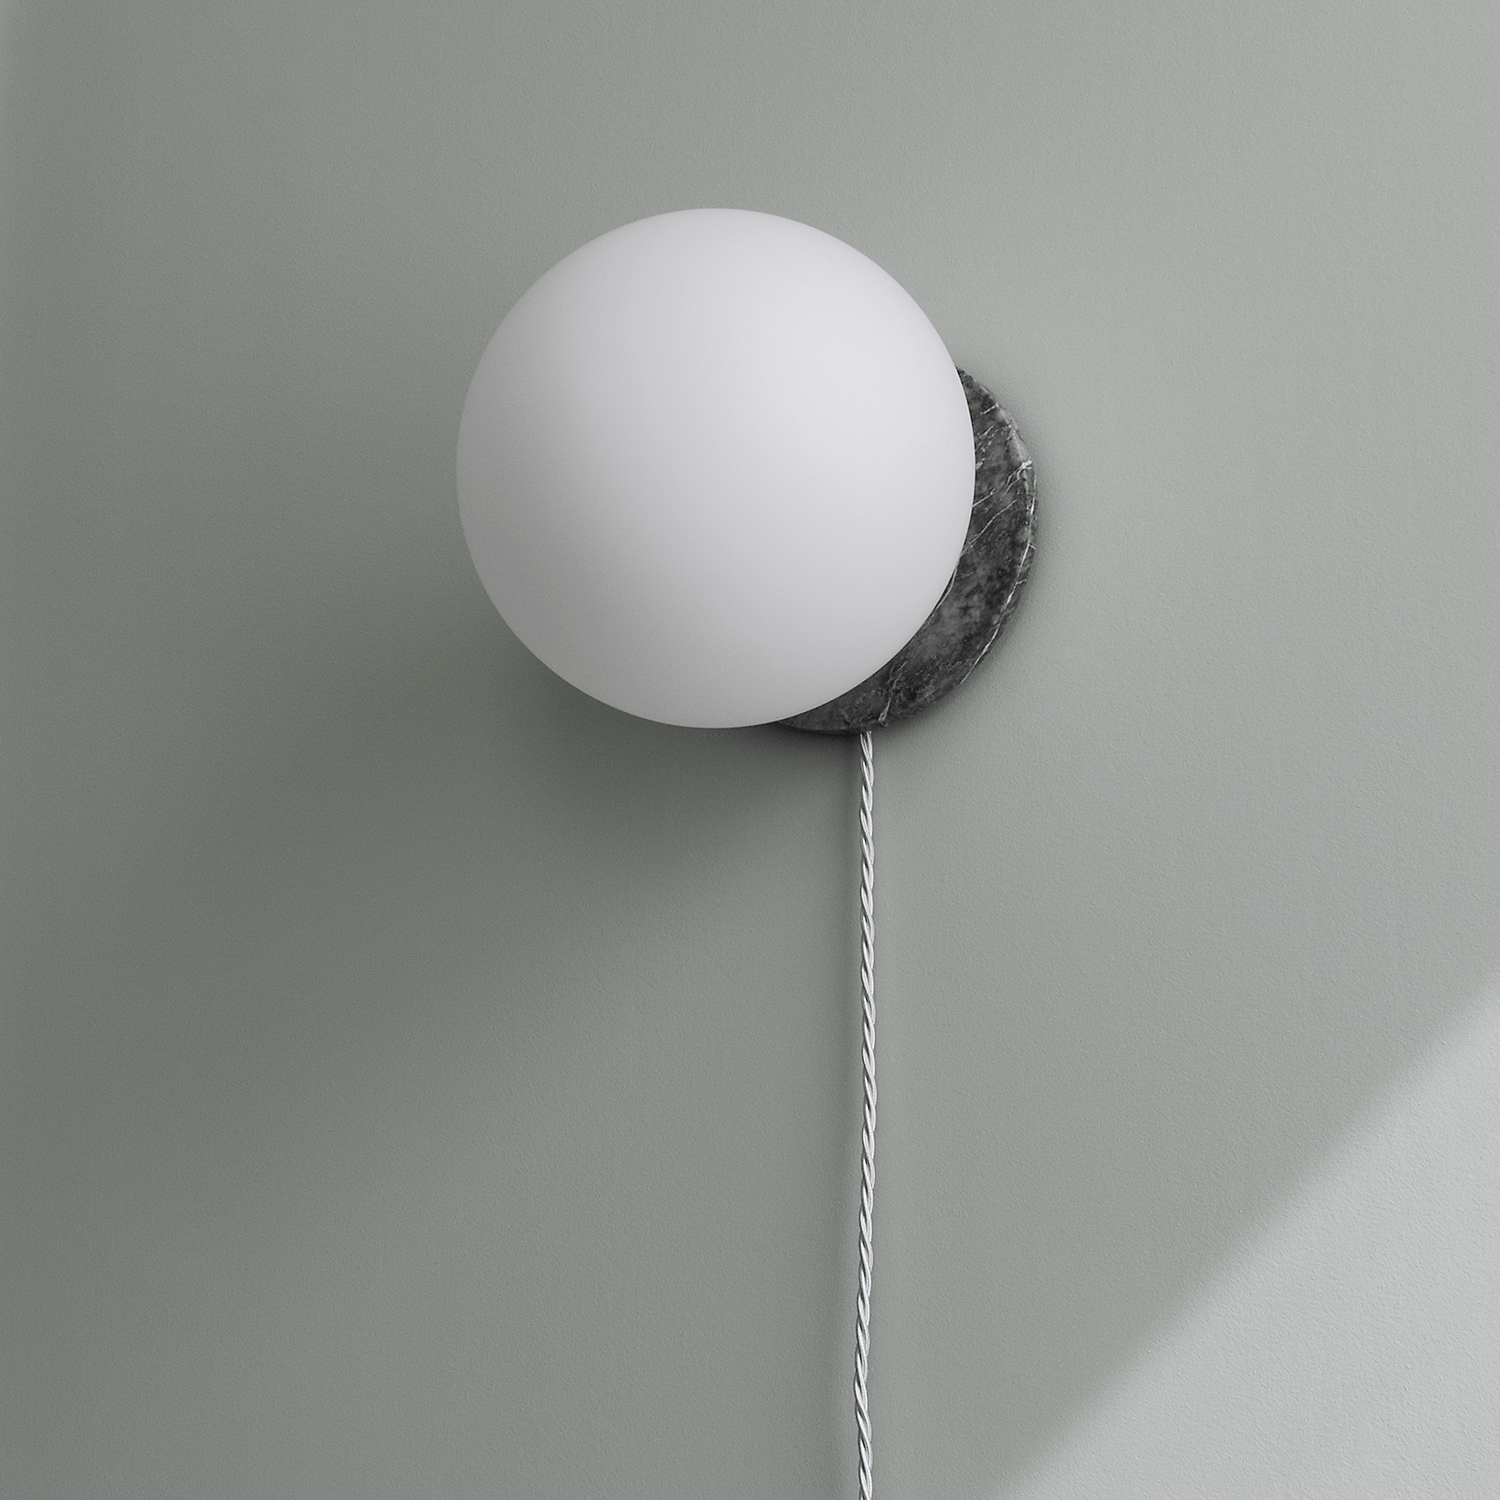 TR wall lamp with marble base by menu on light grey green wall